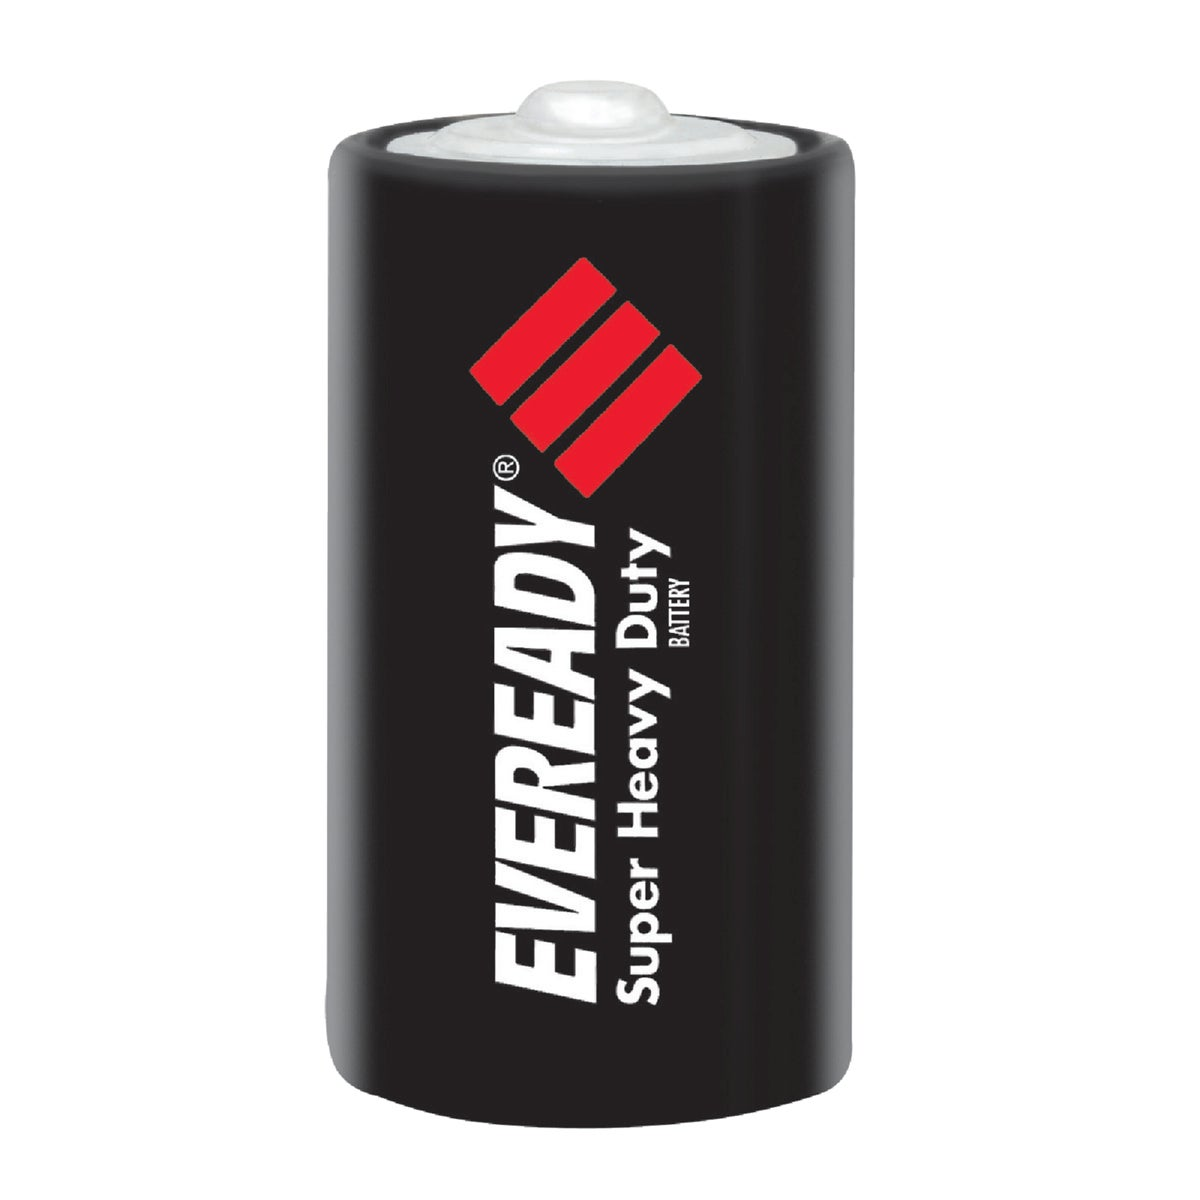 2CD D H/DUTY BATTERY - 1250SW-2 by Energizer